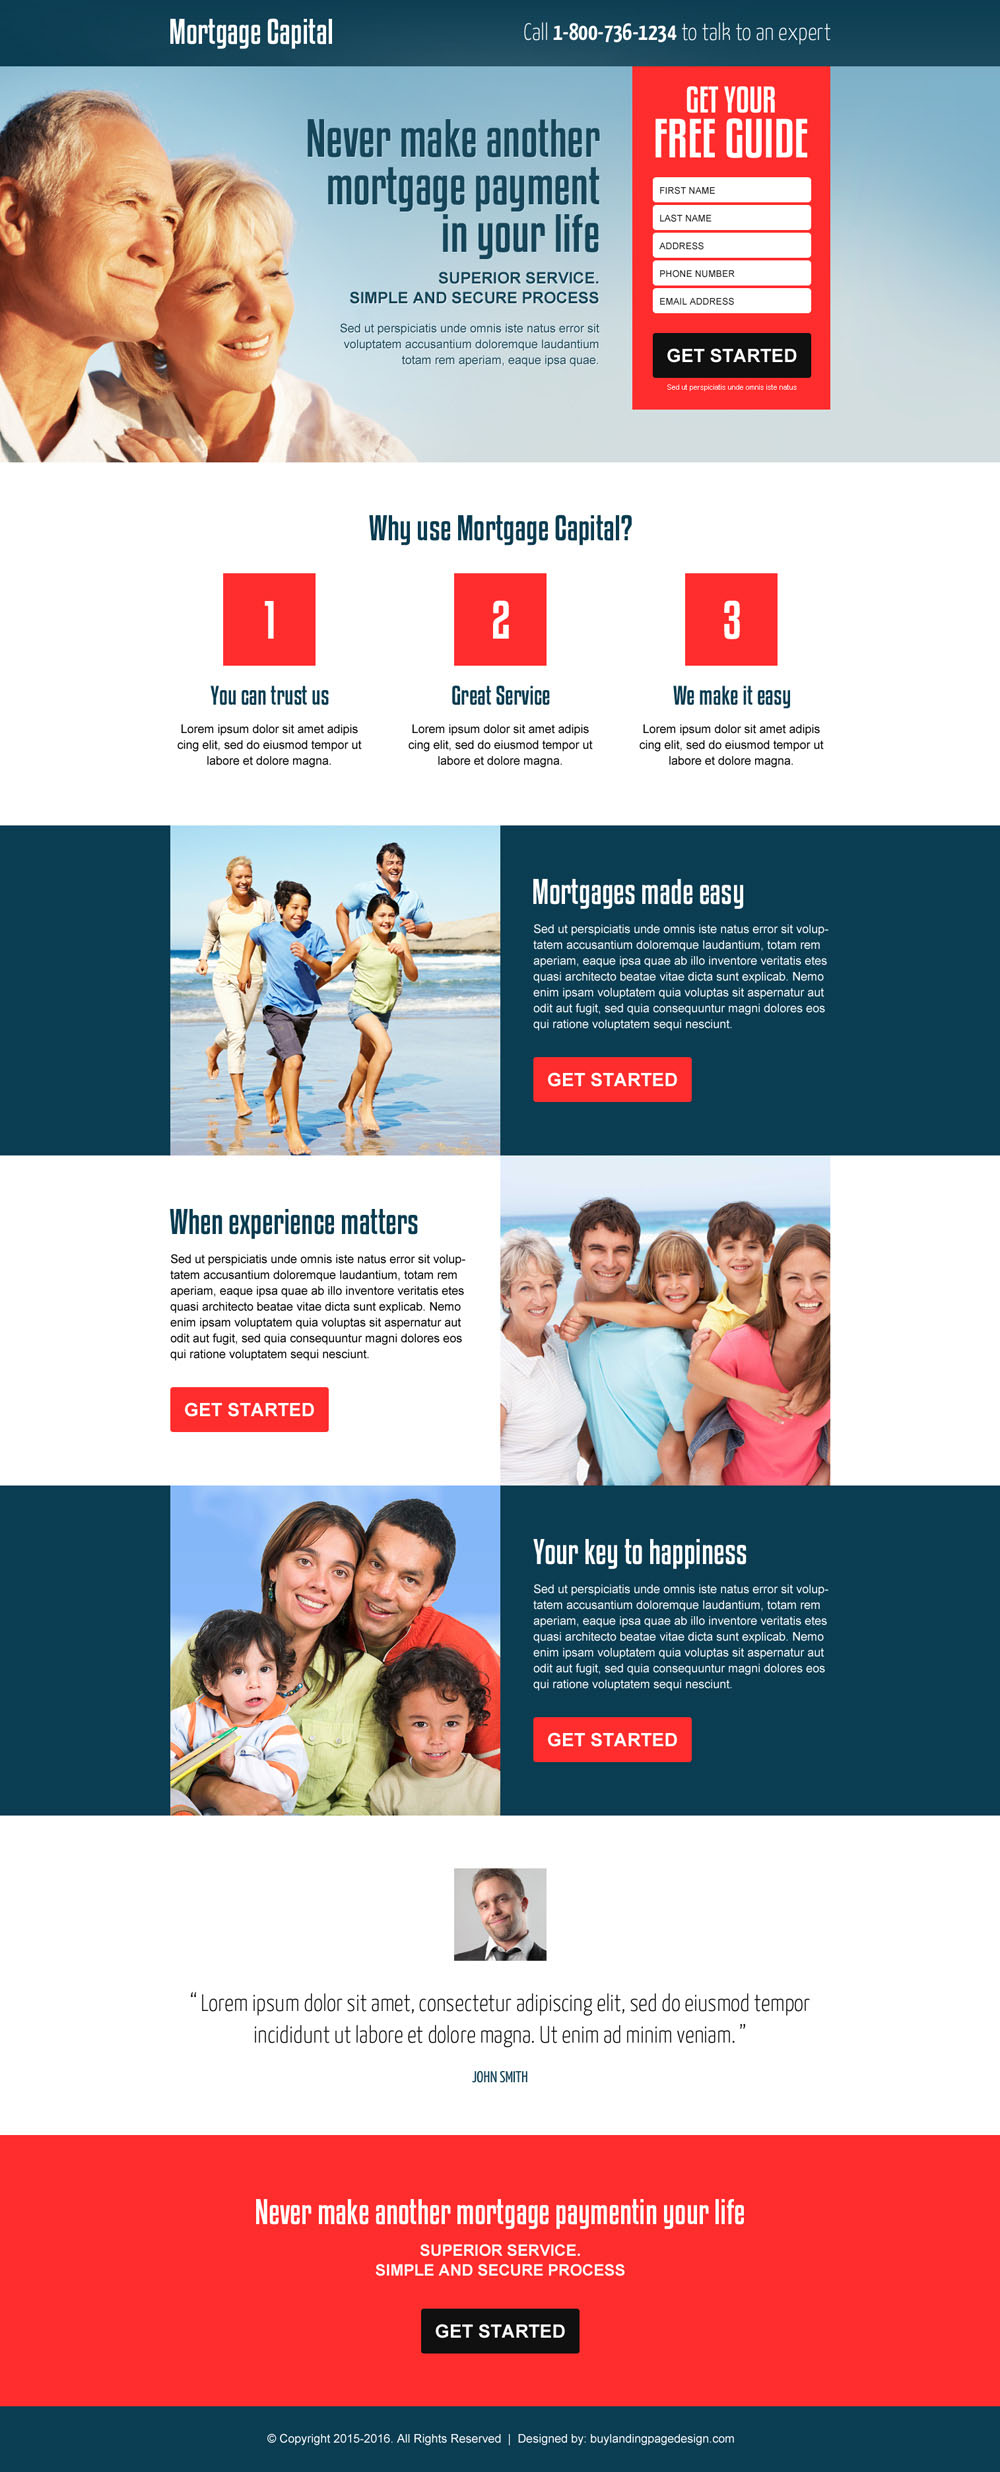 best-mortgage-business-service-free-quote-lead-generation-converting-landing-page-design-013